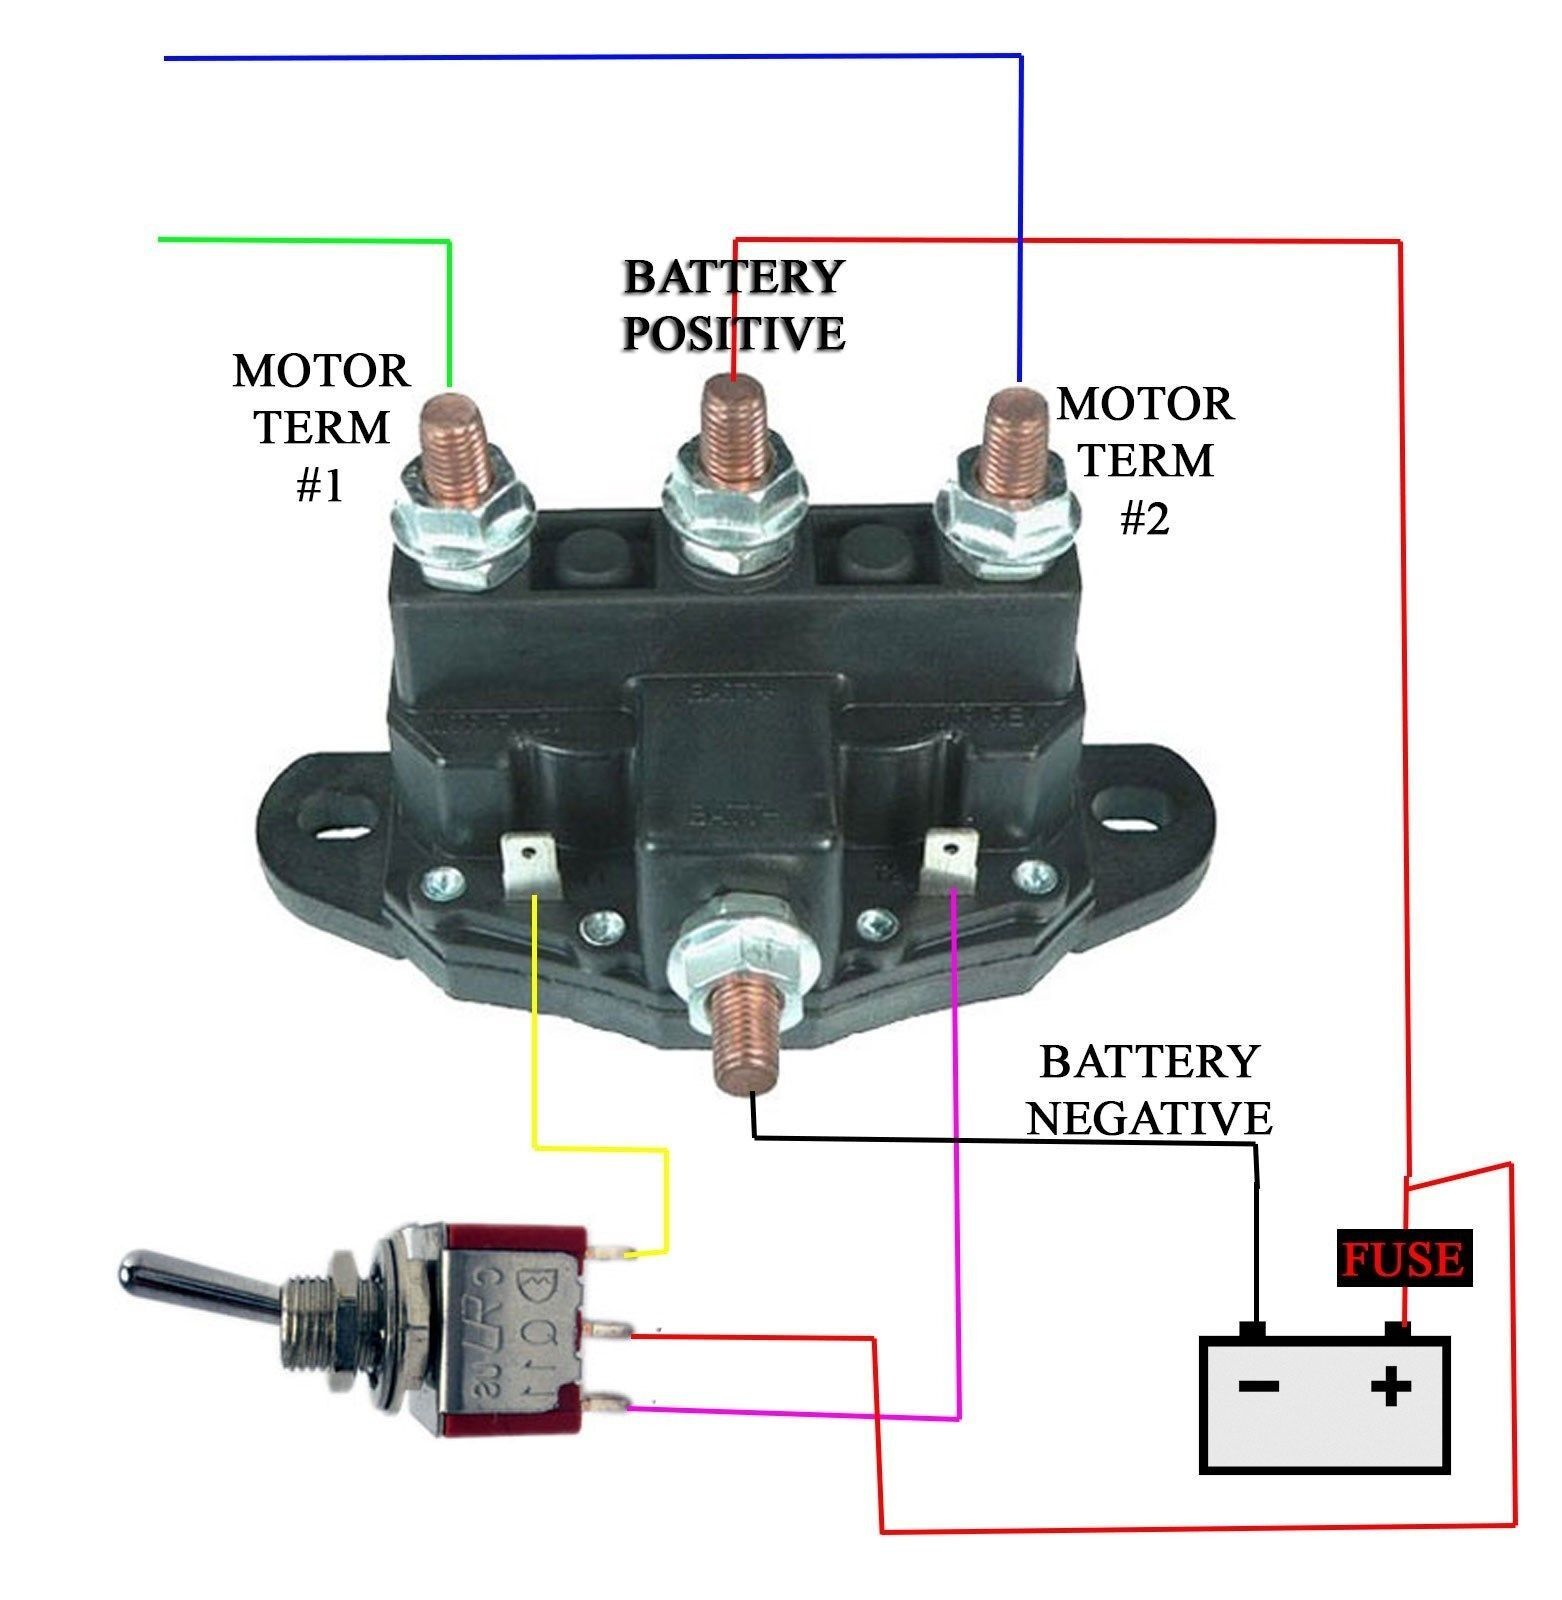 Battery Isolator Wiring Diagram For Winch | Online Wiring Diagram on battery isolator solenoid diagram, dual battery isolator diagram, dual battery wiring diagram, battery isolator relay, battery tester wiring diagram, battery isolator kit, battery switch wiring diagram, motorhome battery wiring diagram, battery isolator battery, multi battery isolator diagram, dual battery charging system diagram, intellitec battery disconnect wiring diagram, battery bank wiring diagram, parallel battery wiring diagram, rv battery isolator diagram, two battery wiring diagram, battery gauge wiring diagram, dual battery hook up diagram, battery terminal wiring diagram, battery isolator cover,